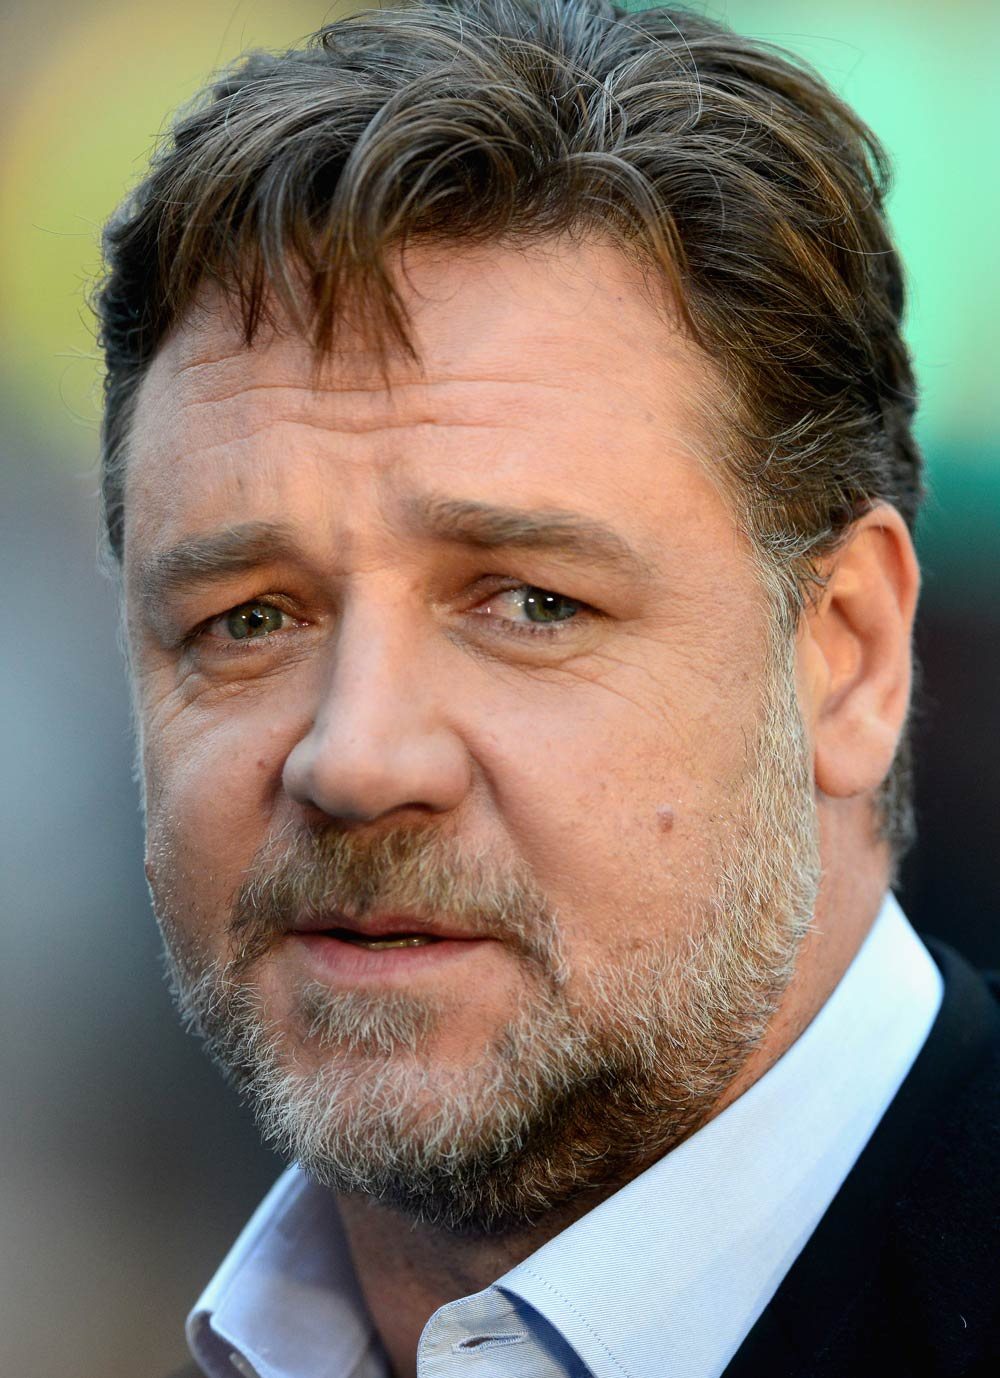 All New Hd Wallpaper Download Russell Crowe 198937 Wallpapers High Quality Download Free